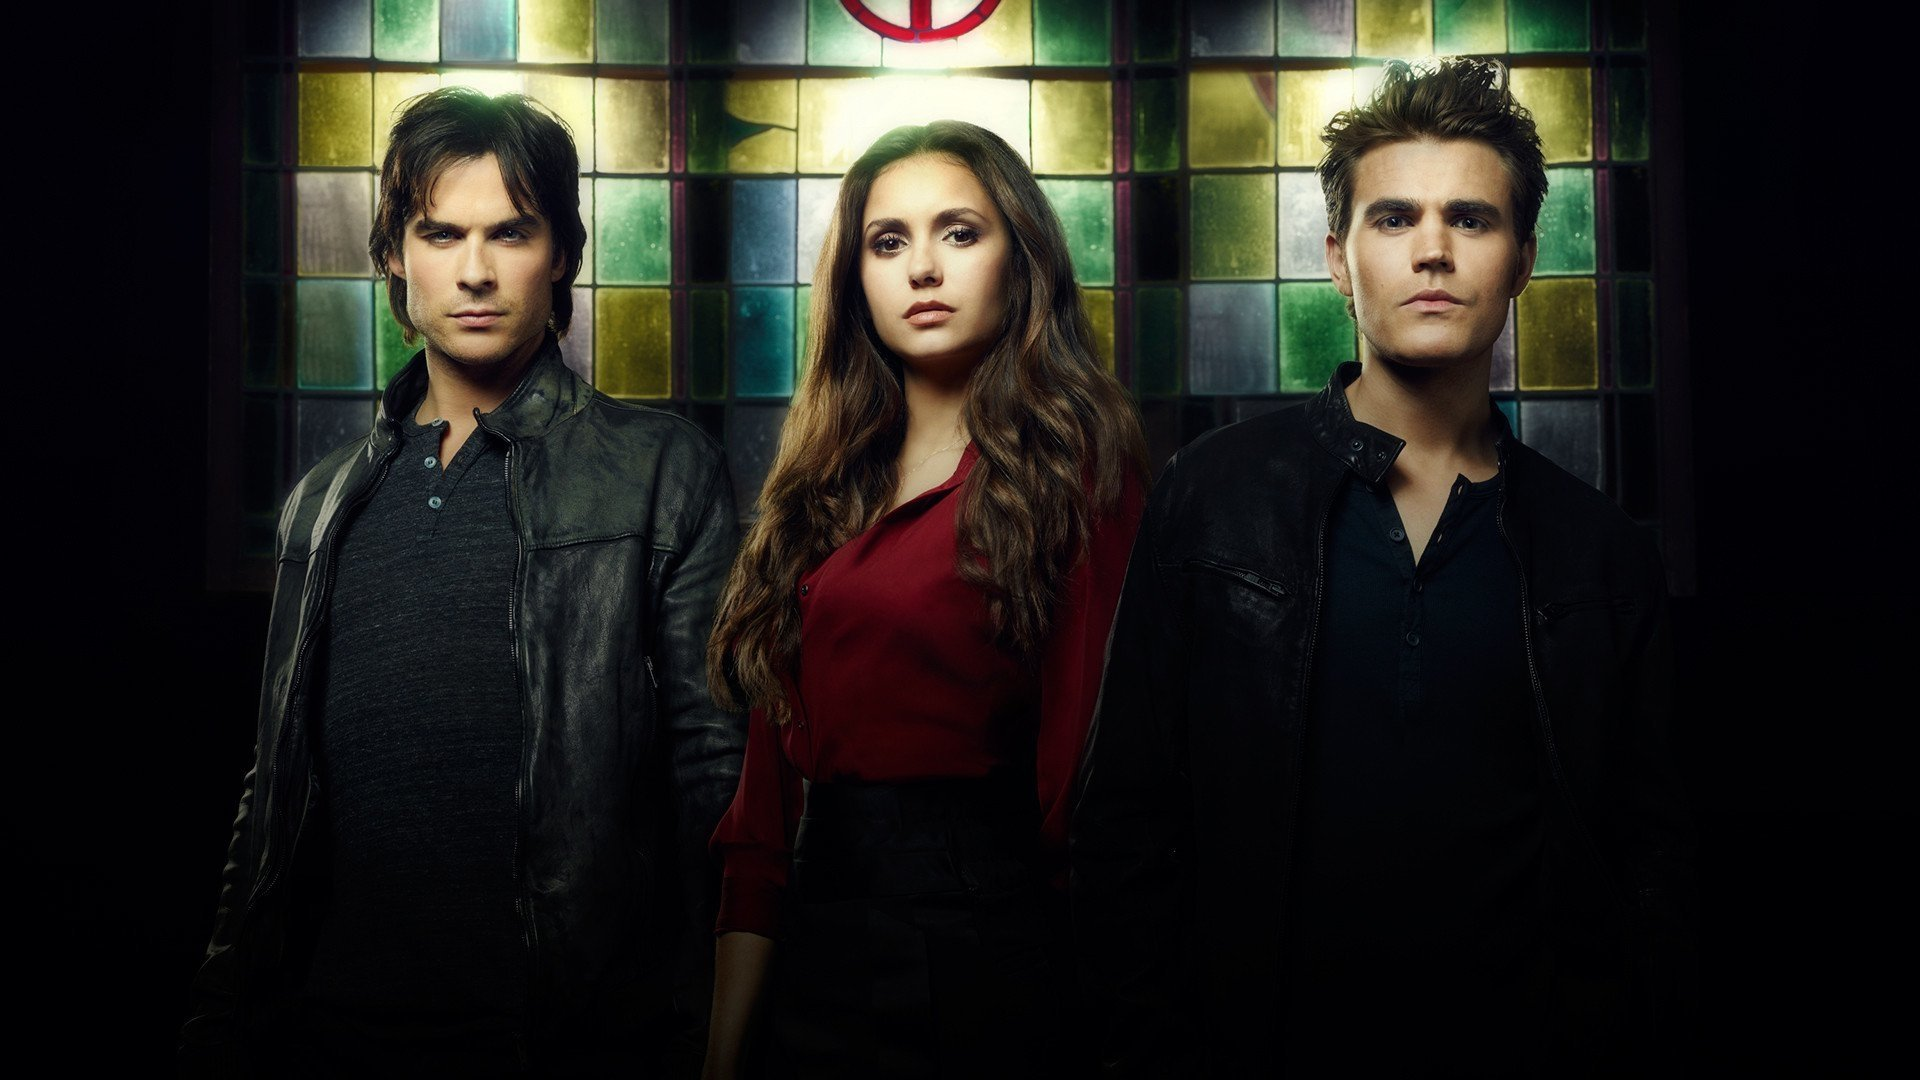 The Vampire Diaries Hd Wallpaper Background Image 1920x1080